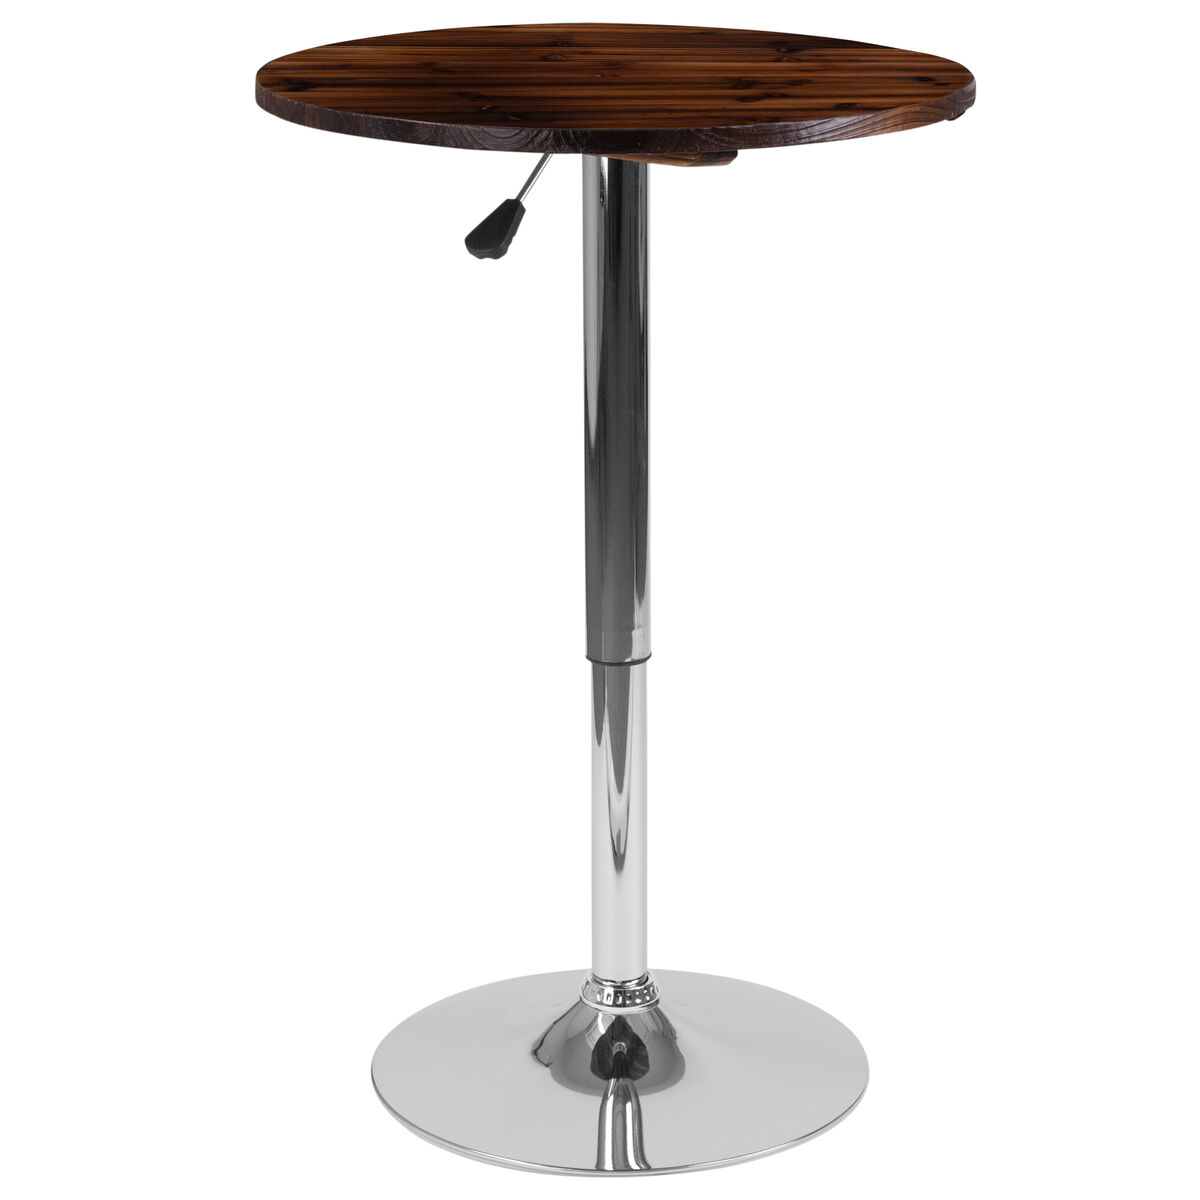 Standard Furniture Cosmo Adjustable Height Round Wood Top: 23.5'' Round Adjustable Height Rustic Pine Wood Table